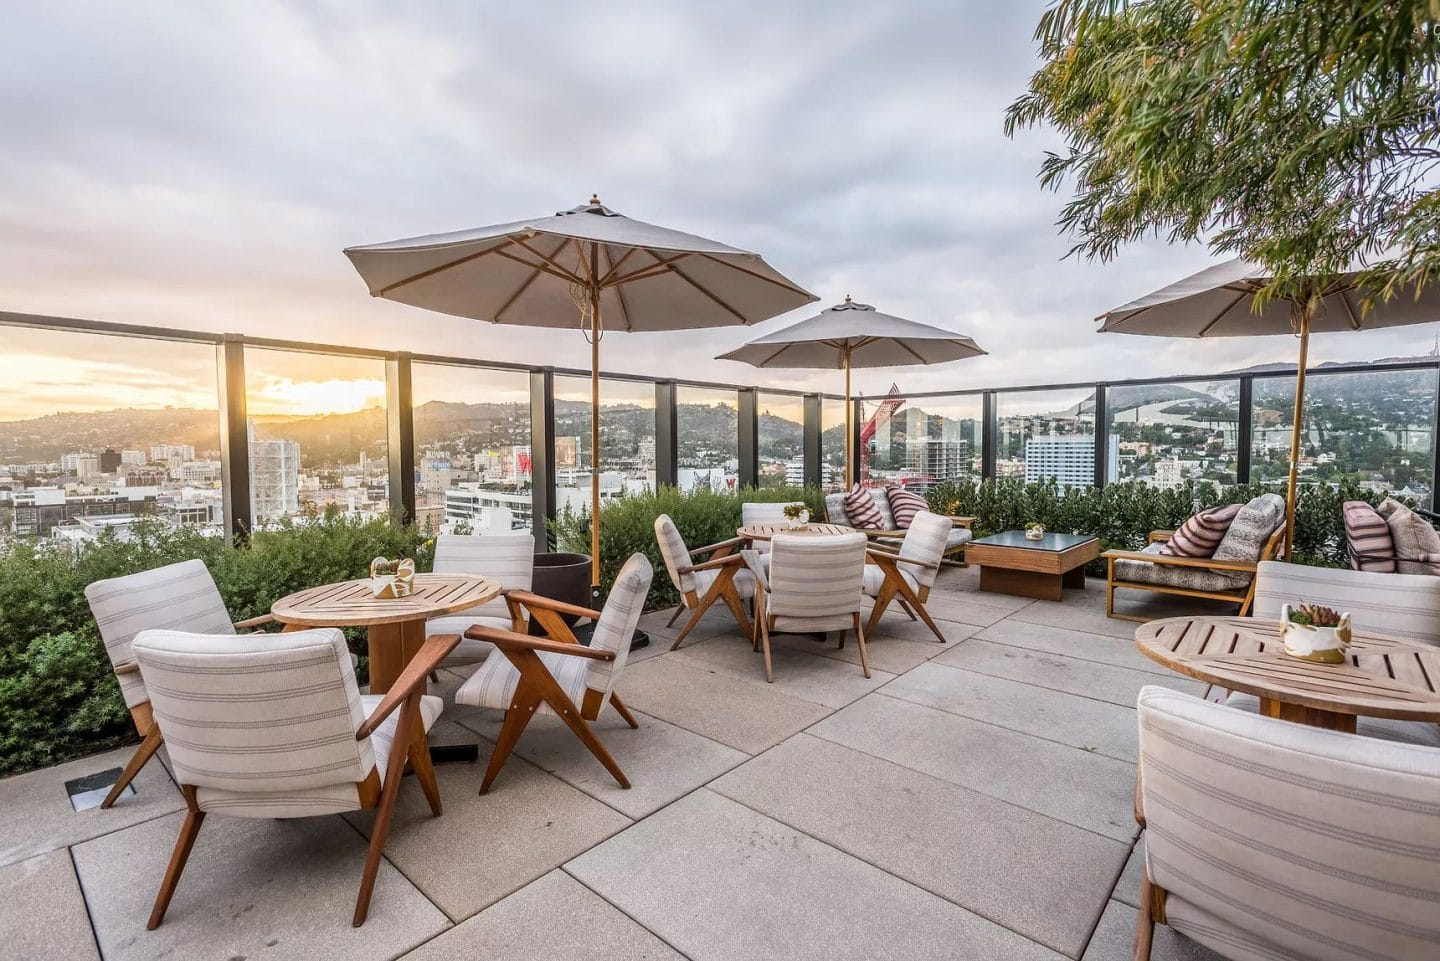 Sorra Has Landed On A Rooftop In Hollywood And The Views Are Everything